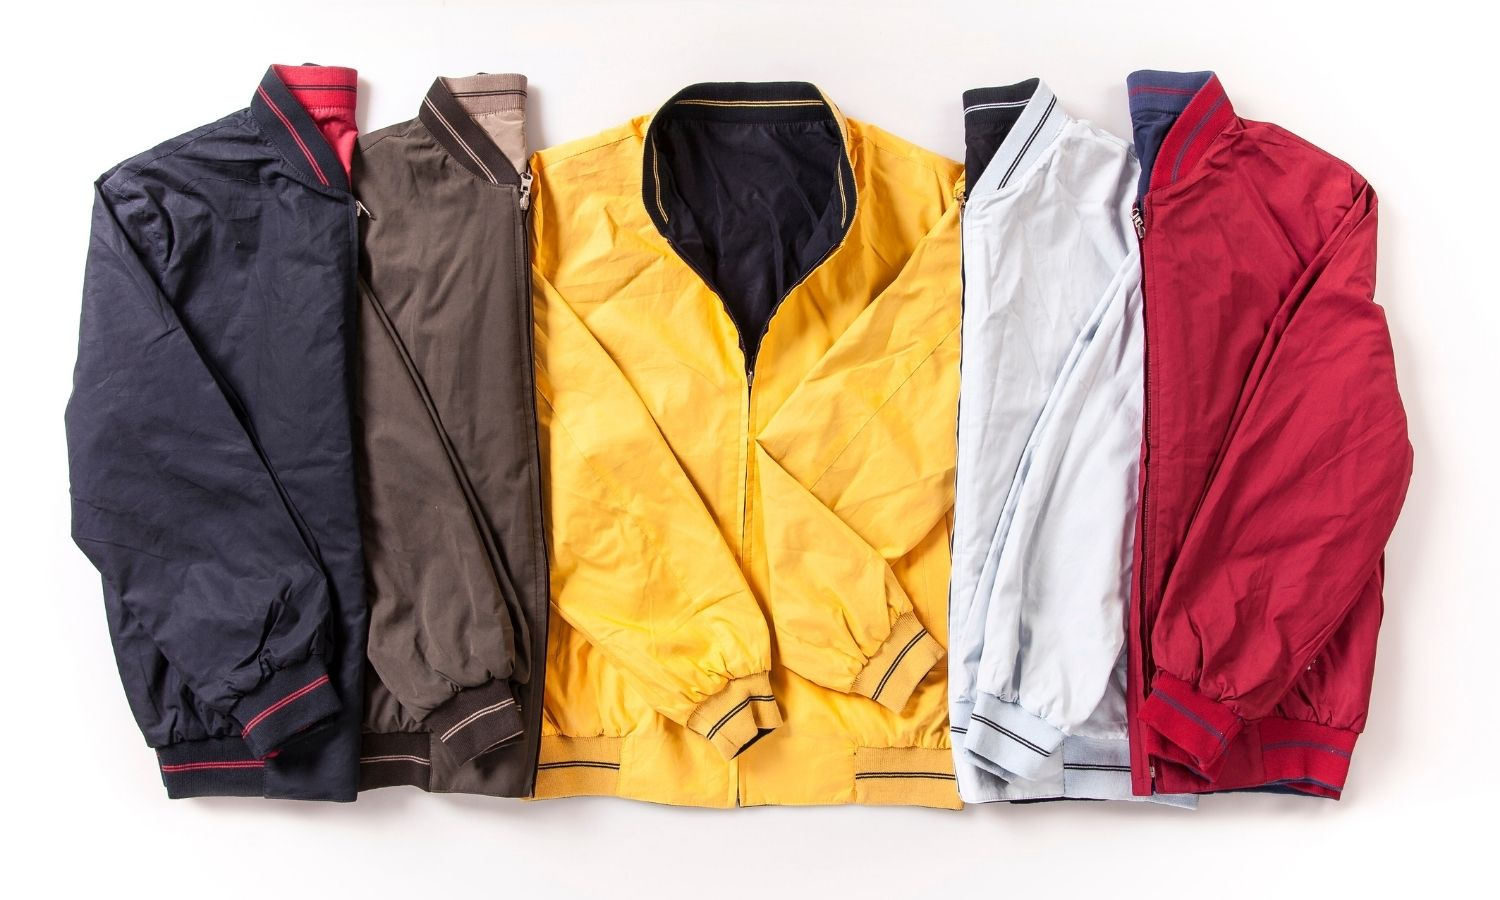 13 Best Jacket Brands to Spice Up Your Outerwear Style